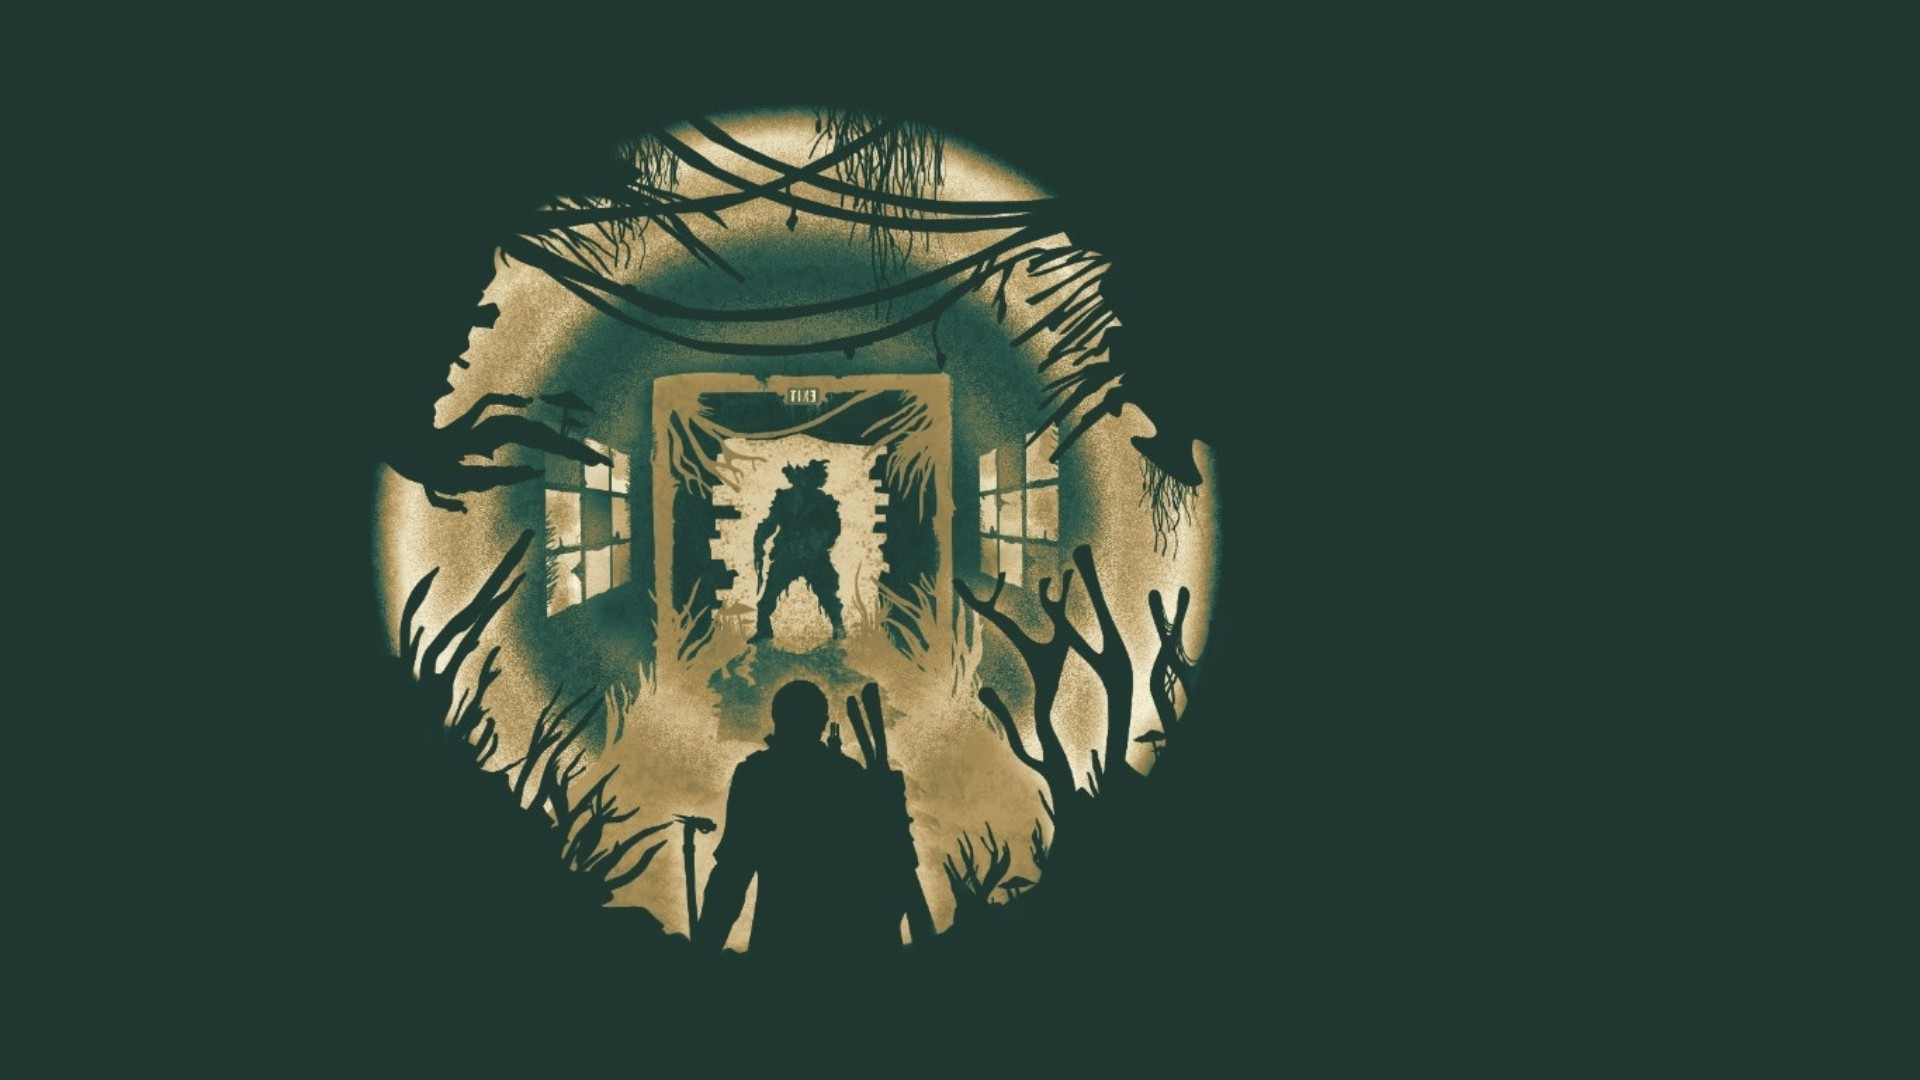 Hd Gamer Wallpaper The Last Of Us Minimalism Video Games Wallpapers Hd